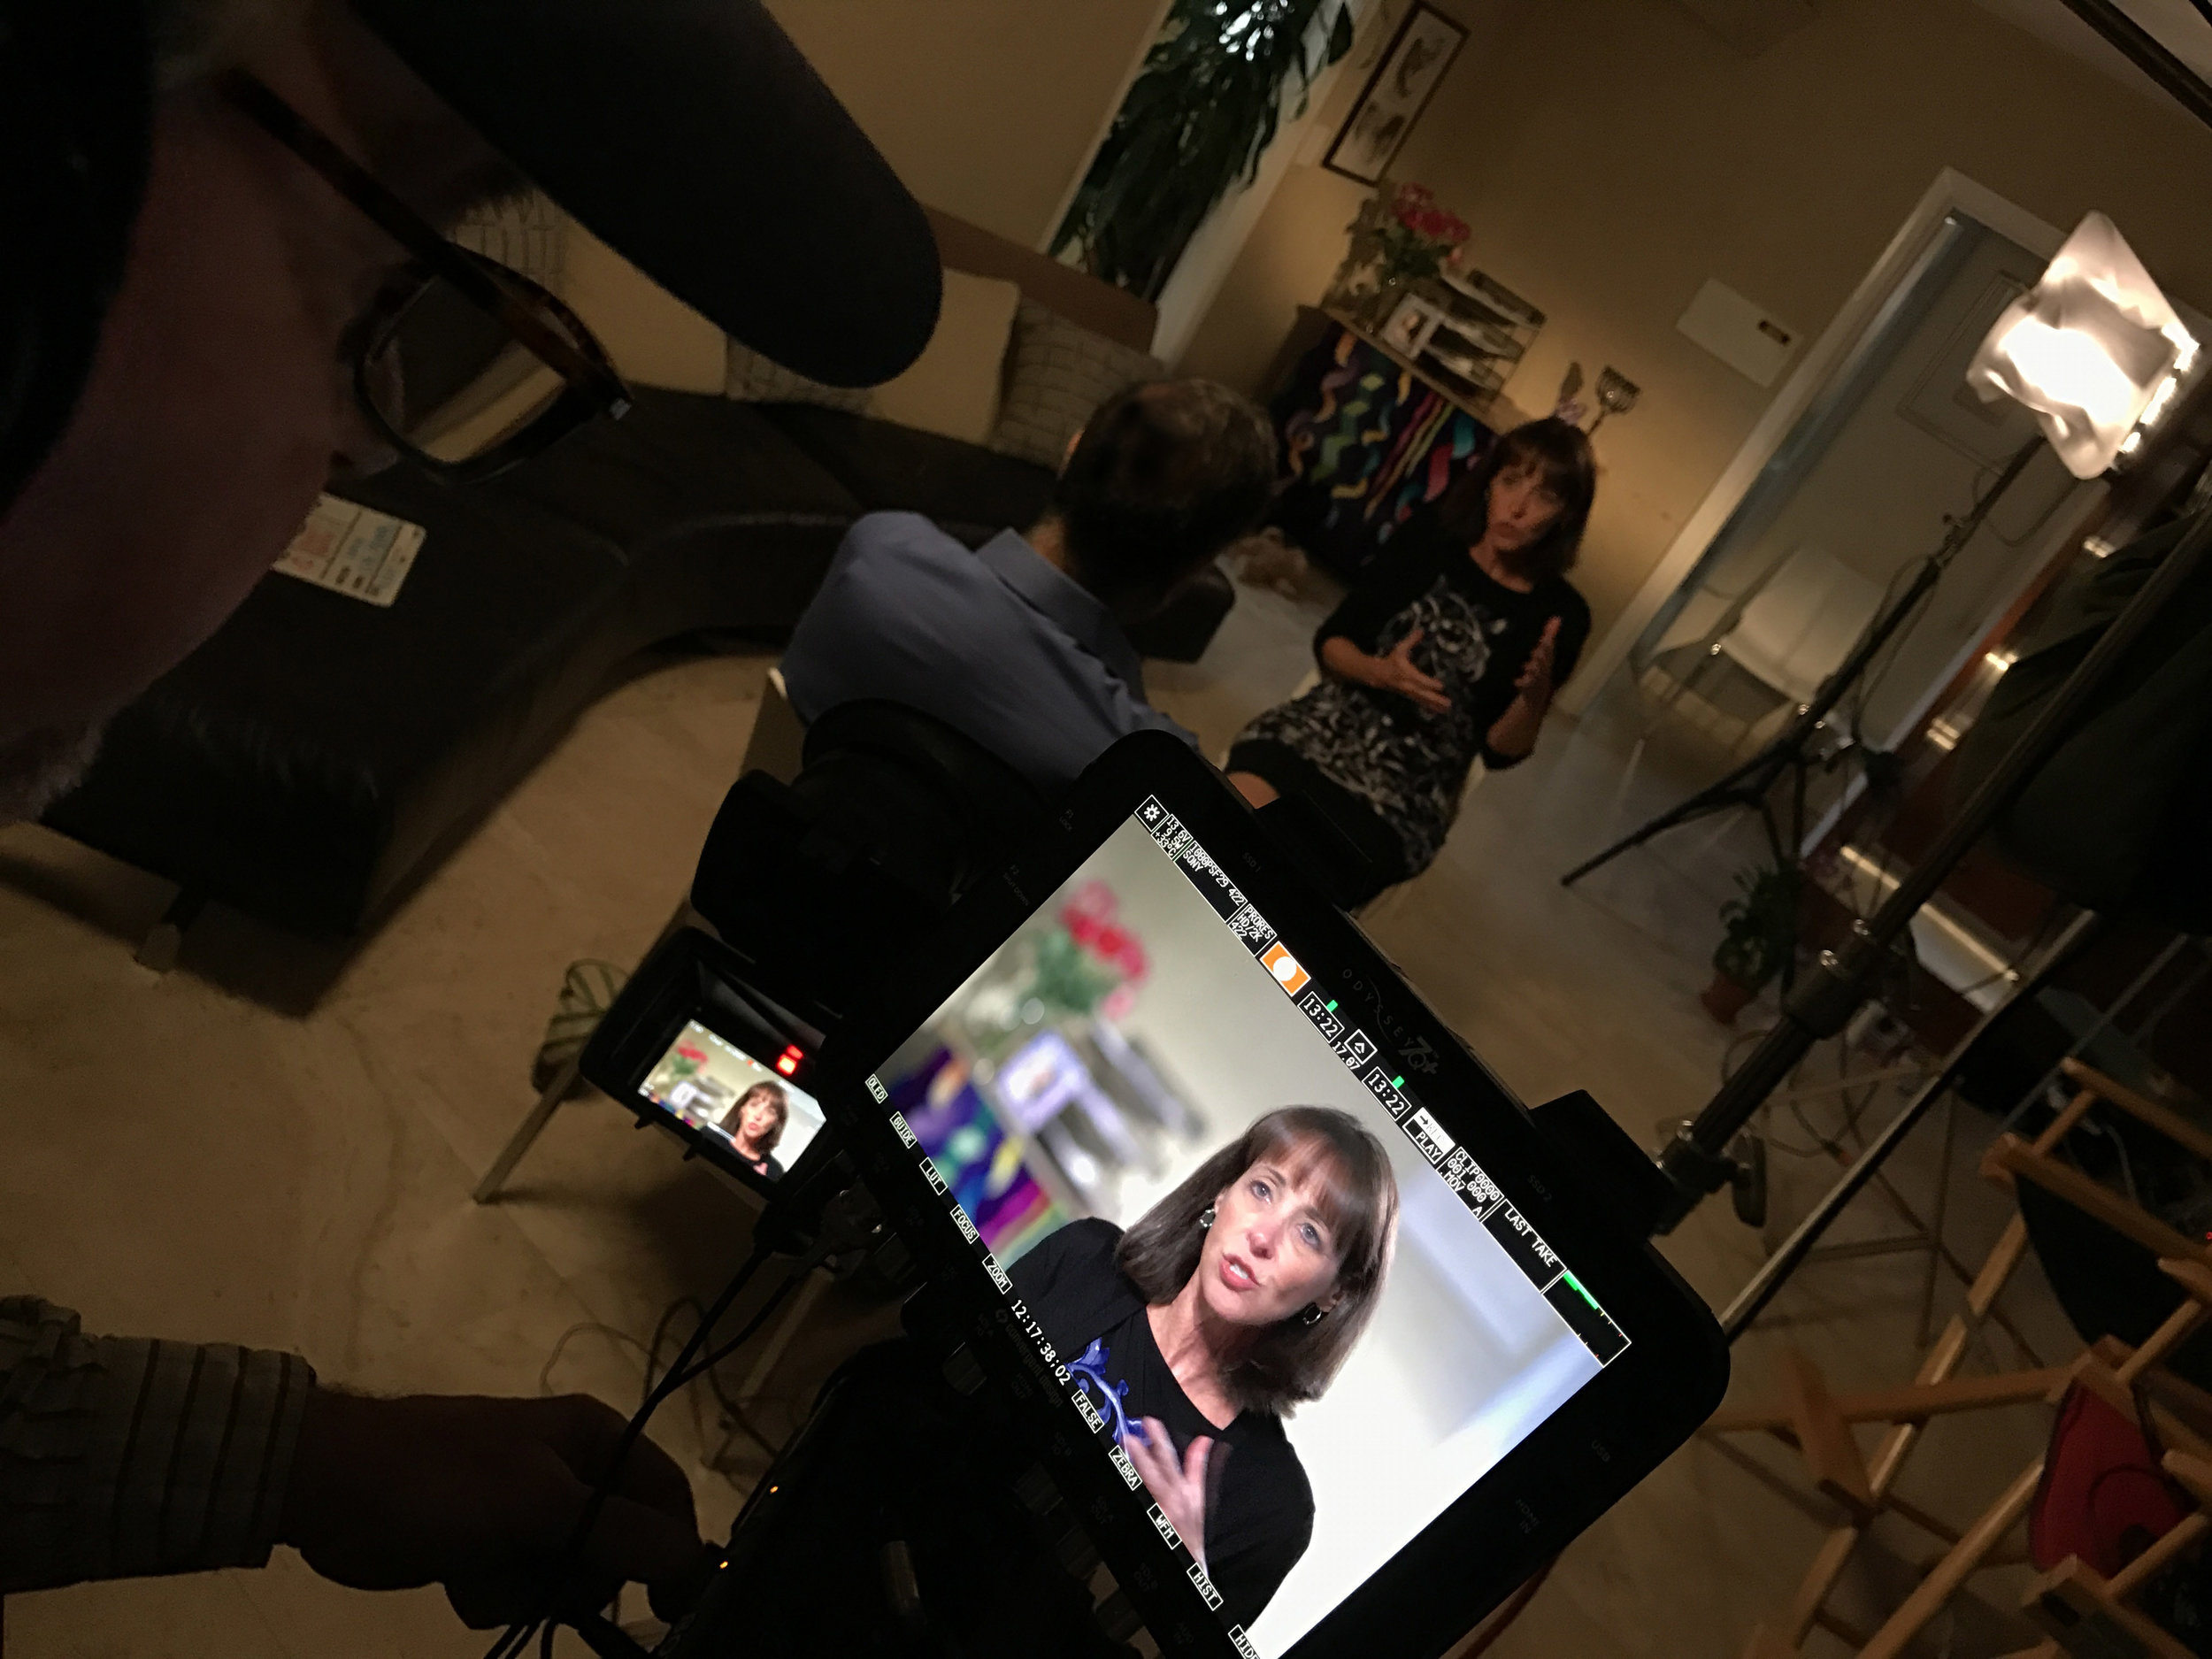 Senior Executive Producer Dr. Mindy S. Hersh, being interviewed about her role as the former Director of Academic Enrichment for the  University of Miami, George Feldenkreis Program in Judaic Studies, Holocaust Survivors Student Internship Program.